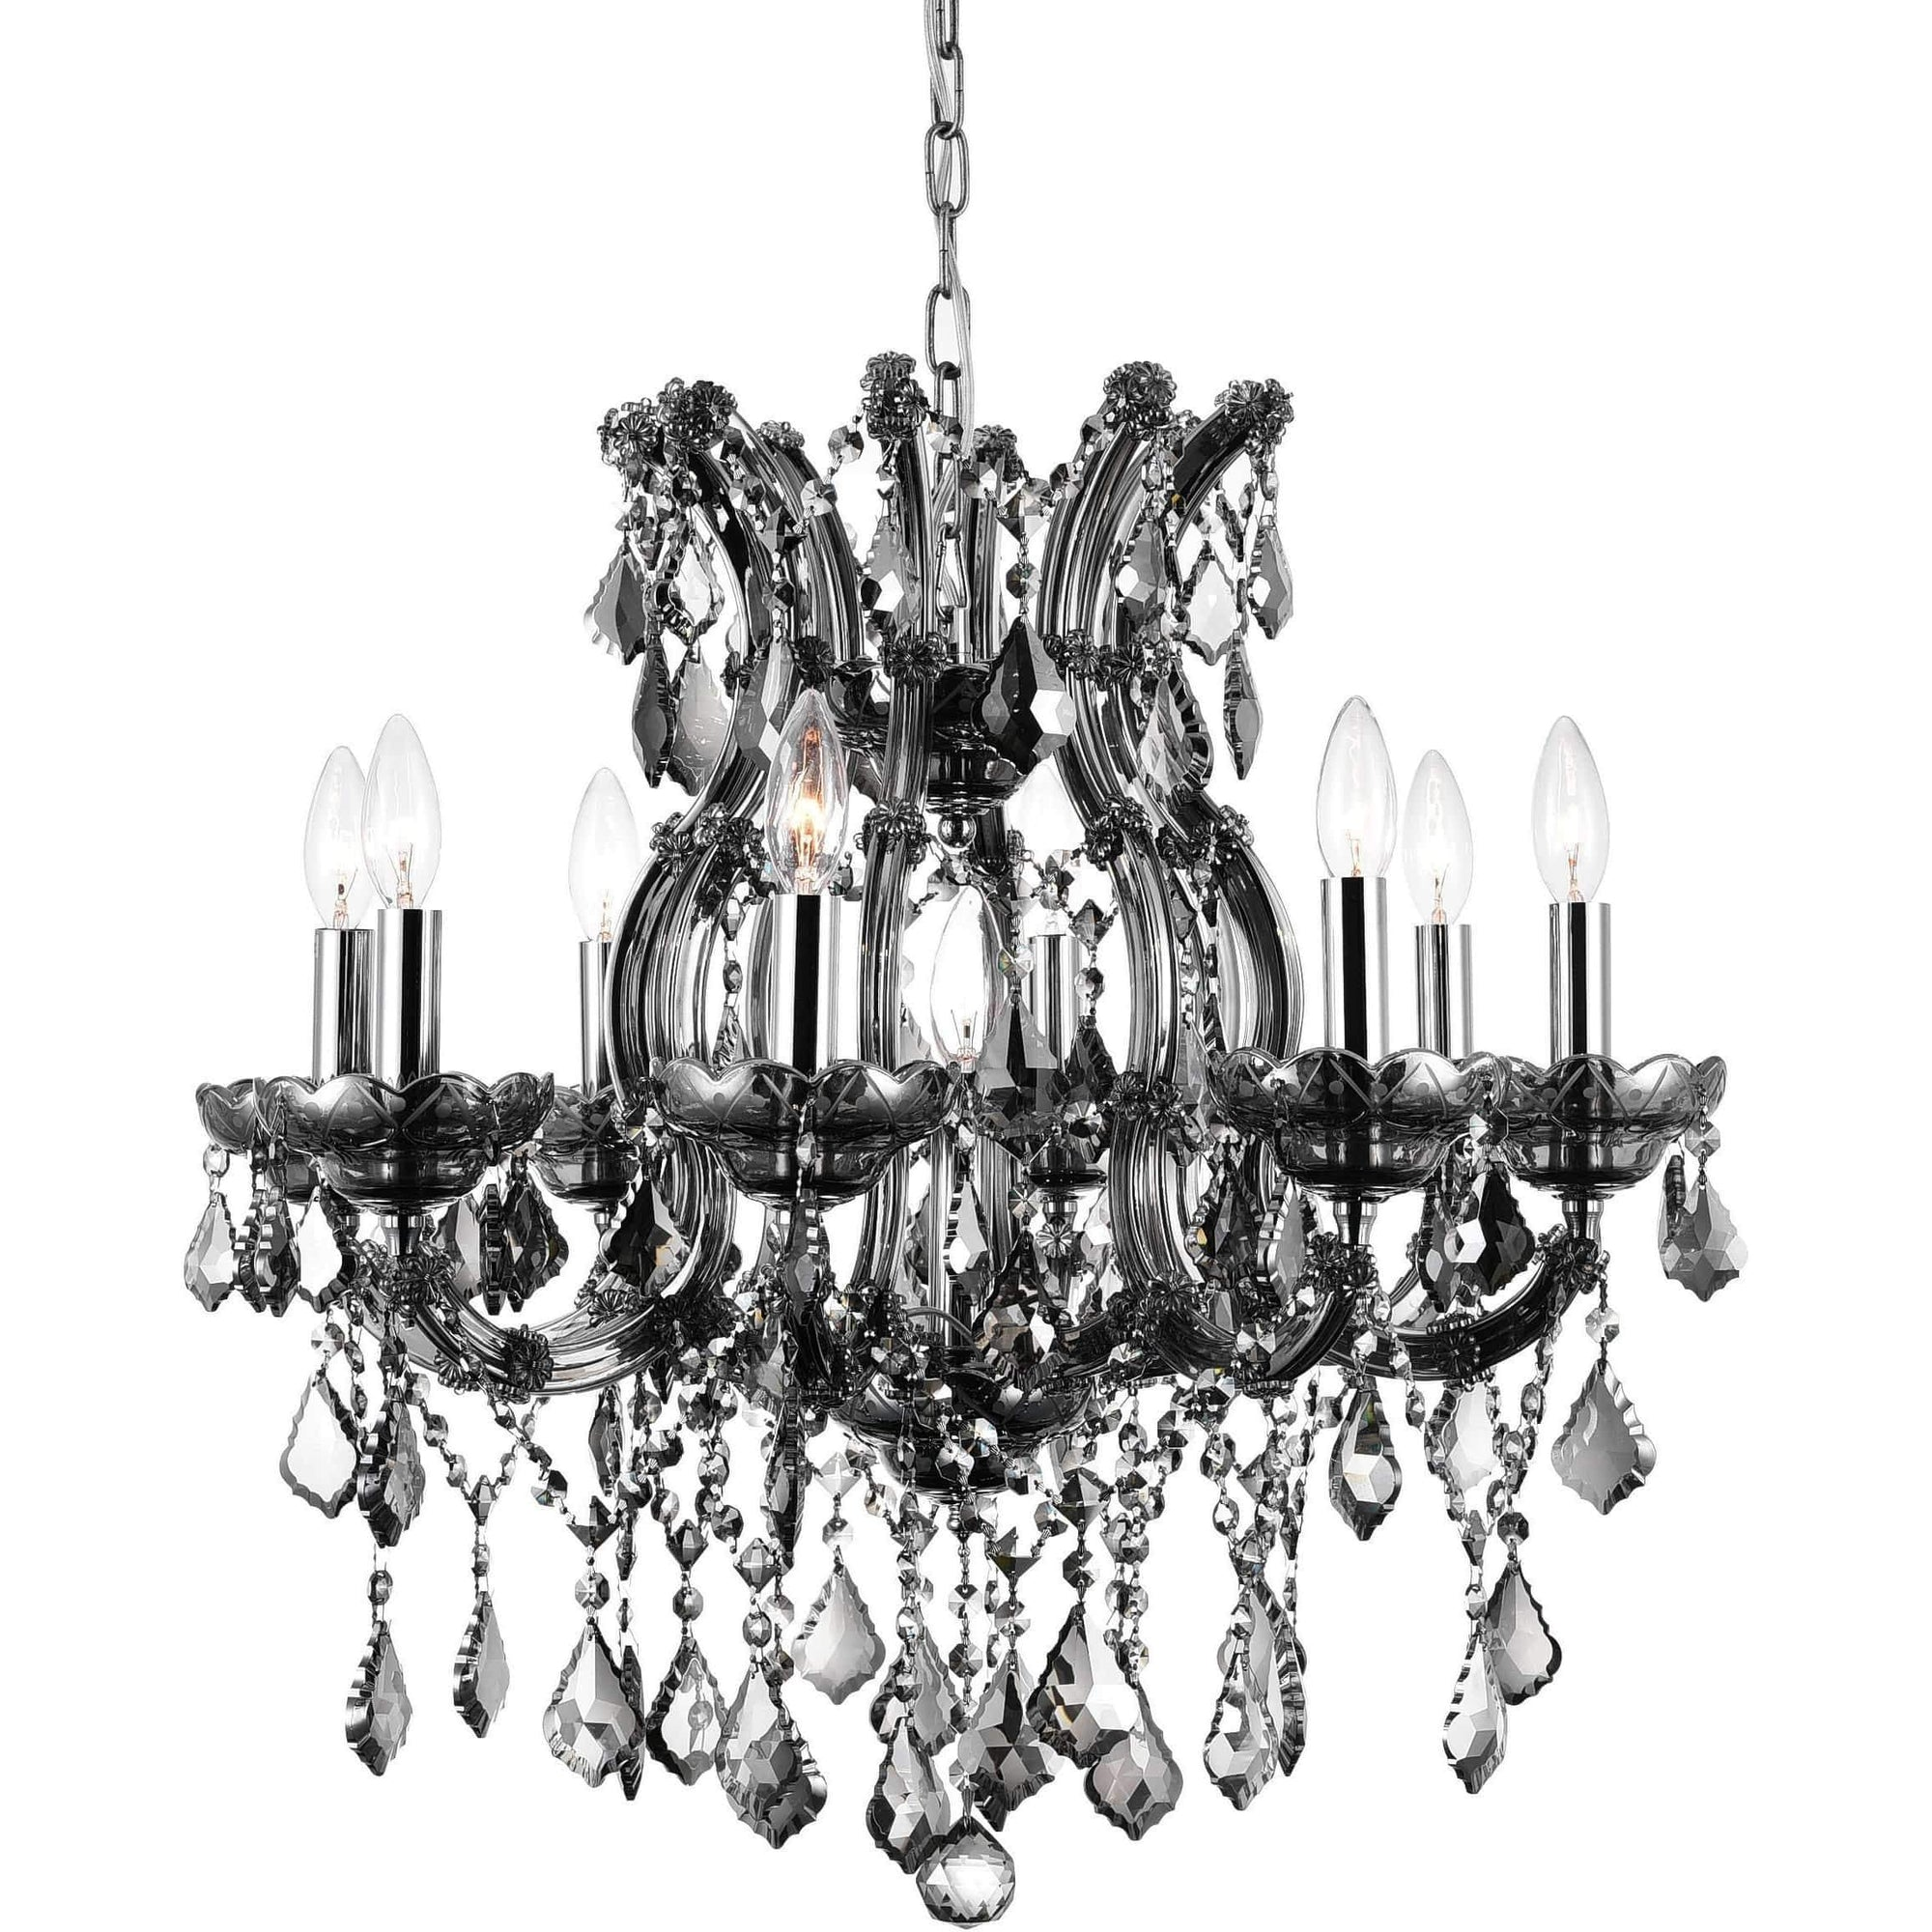 CWI Lighting Chandeliers Chrome / K9 Smoke Maria Theresa 9 Light Up Chandelier with Chrome finish by CWI Lighting 8311P24C-9 (Smoke)